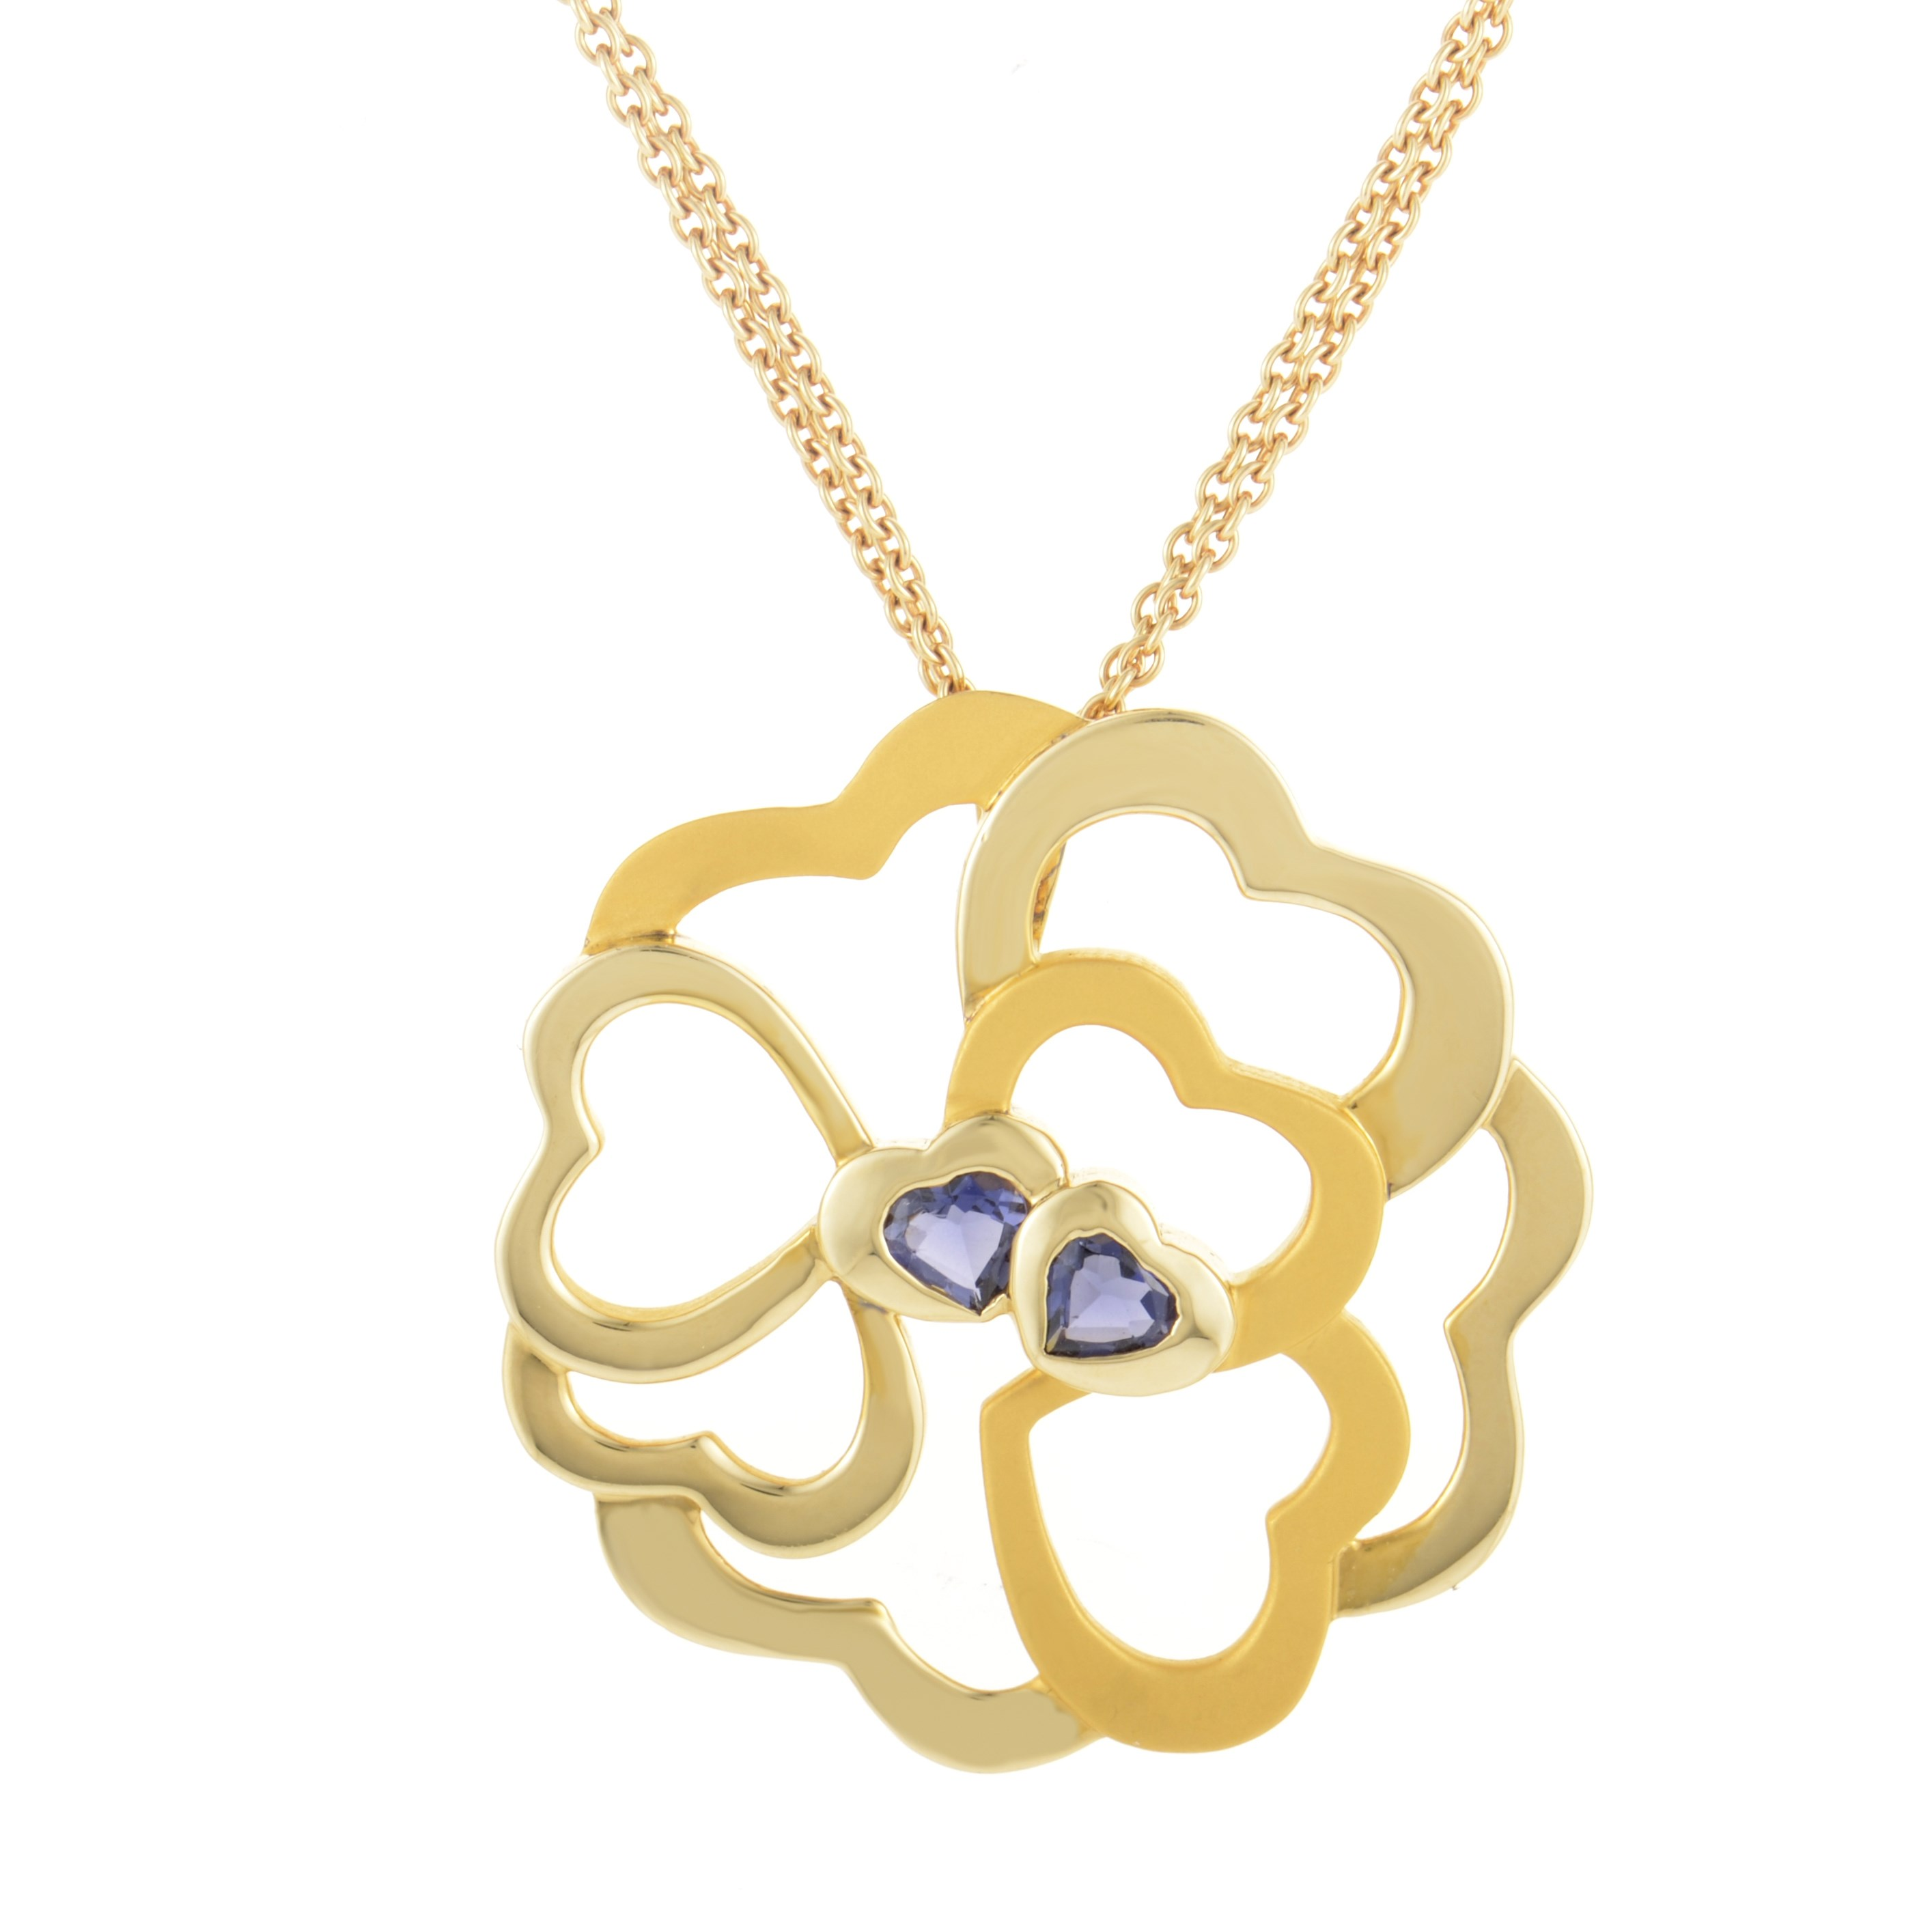 18K Yellow Gold & Iolite Heart Cluster Large Pendant Necklace DA12955-014018